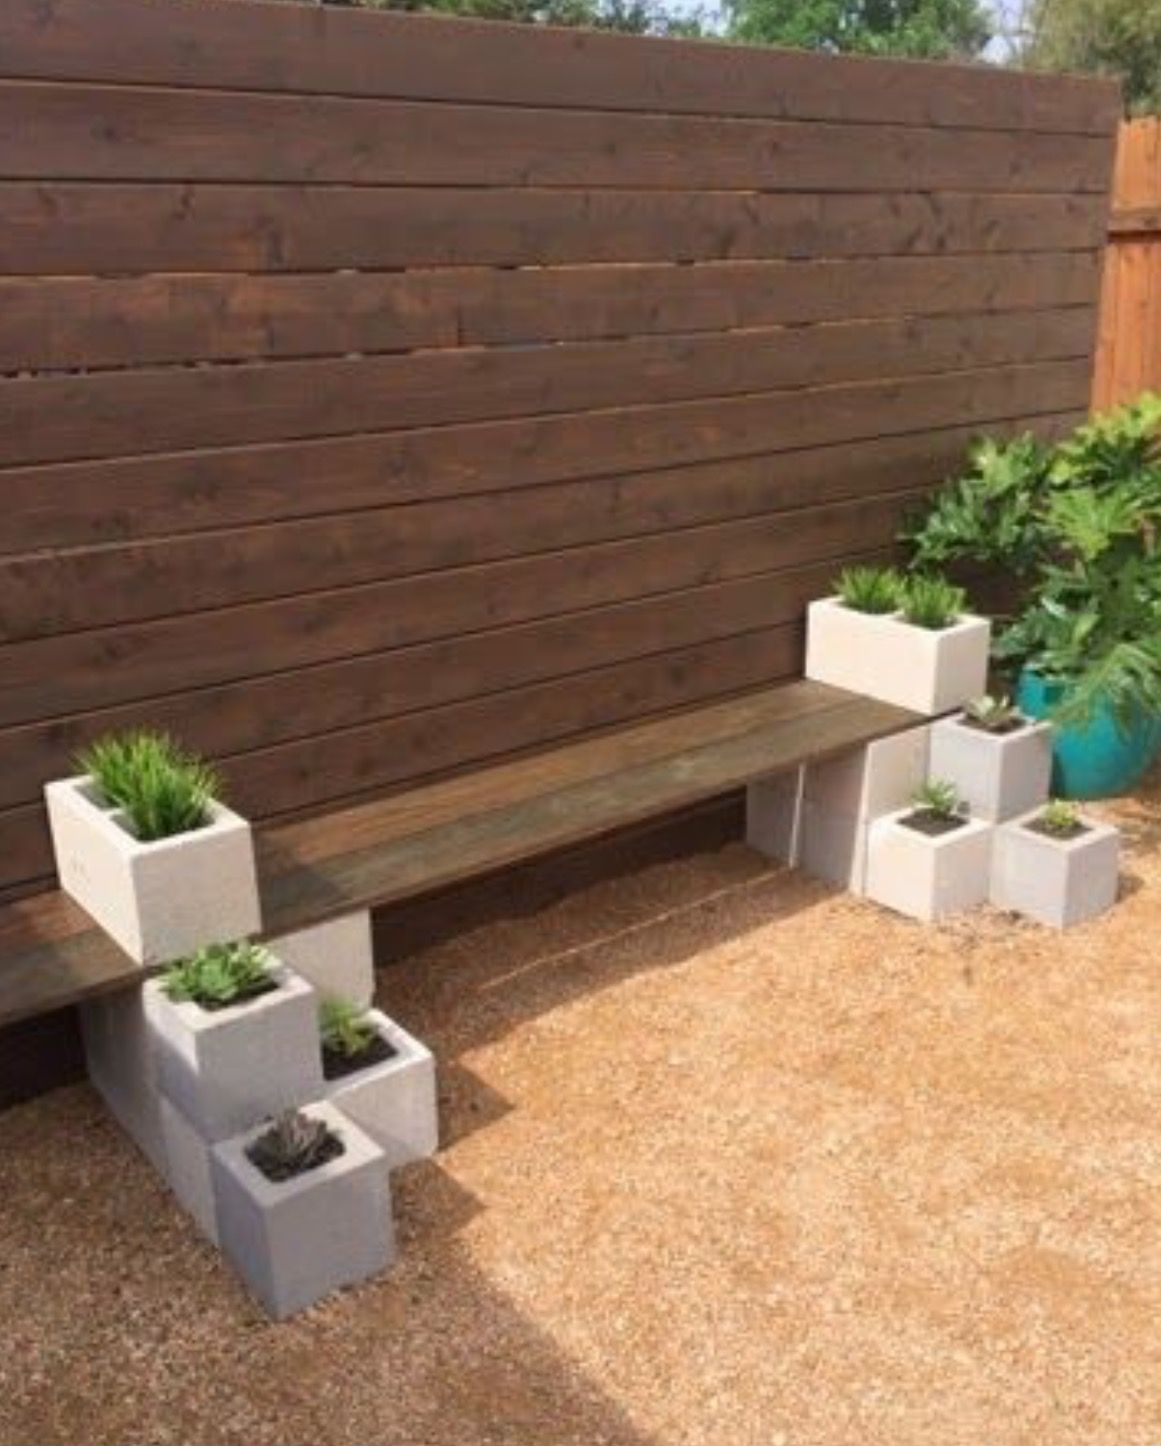 Easy Bench With Cinder Blocks Decoration Jardin Meuble Jardin Amenagement Jardin